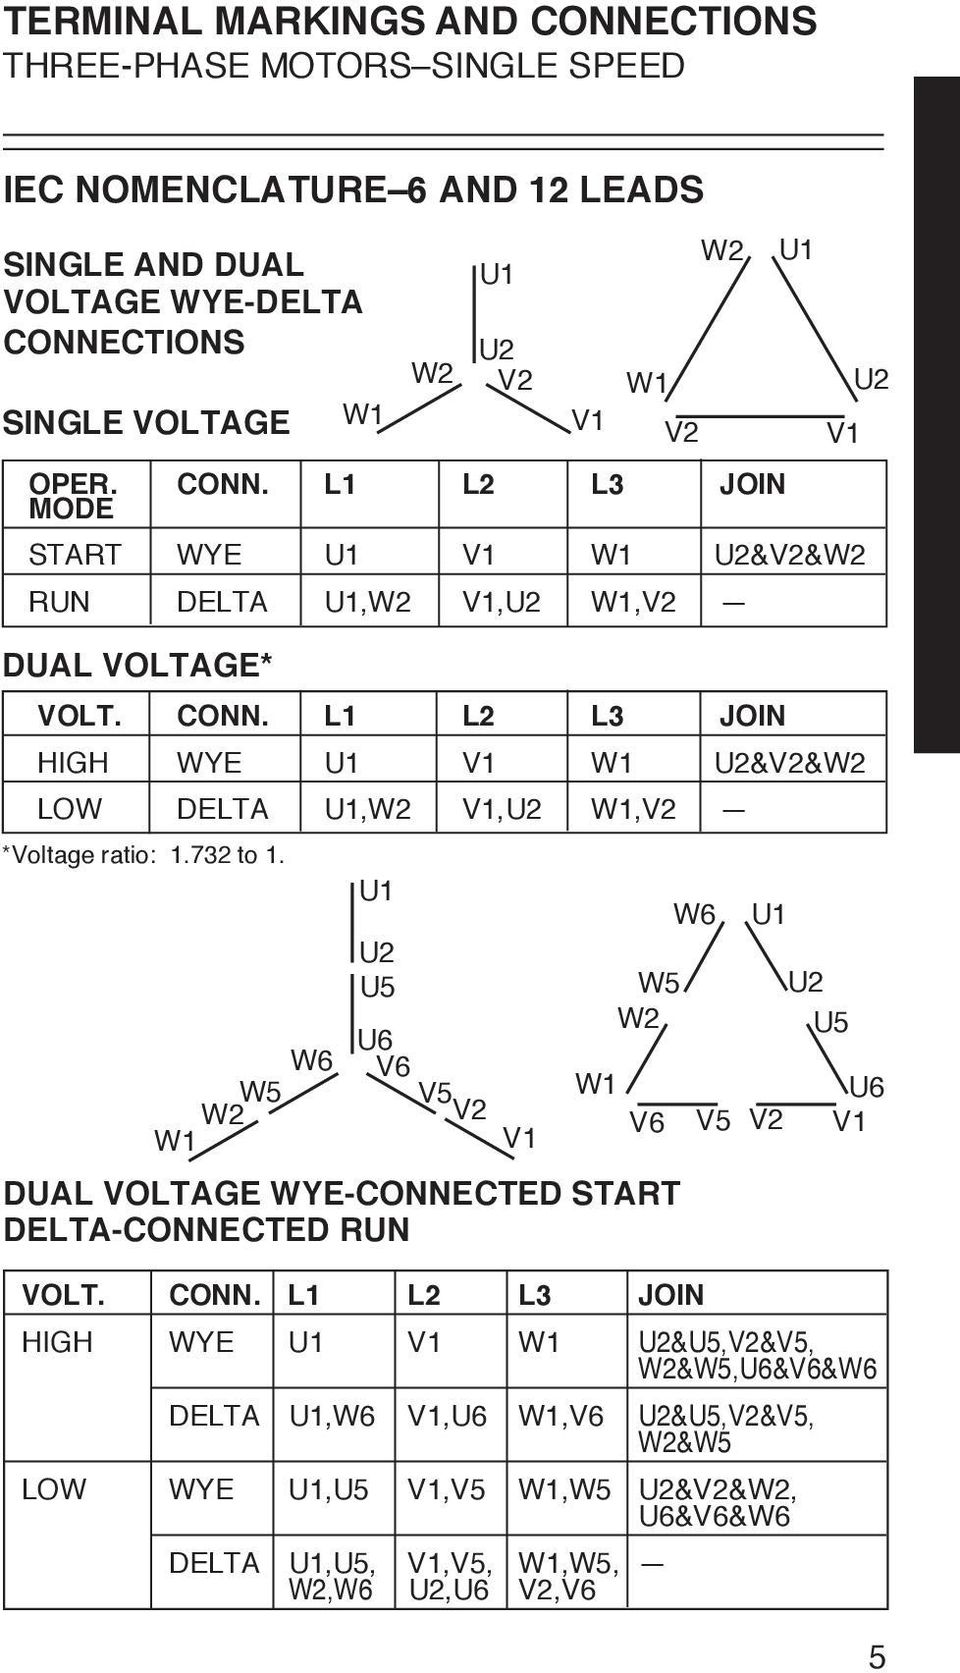 Three Phase 3 Phase Motor Wiring Diagram 12 Leads from static-cdn.imageservice.cloud